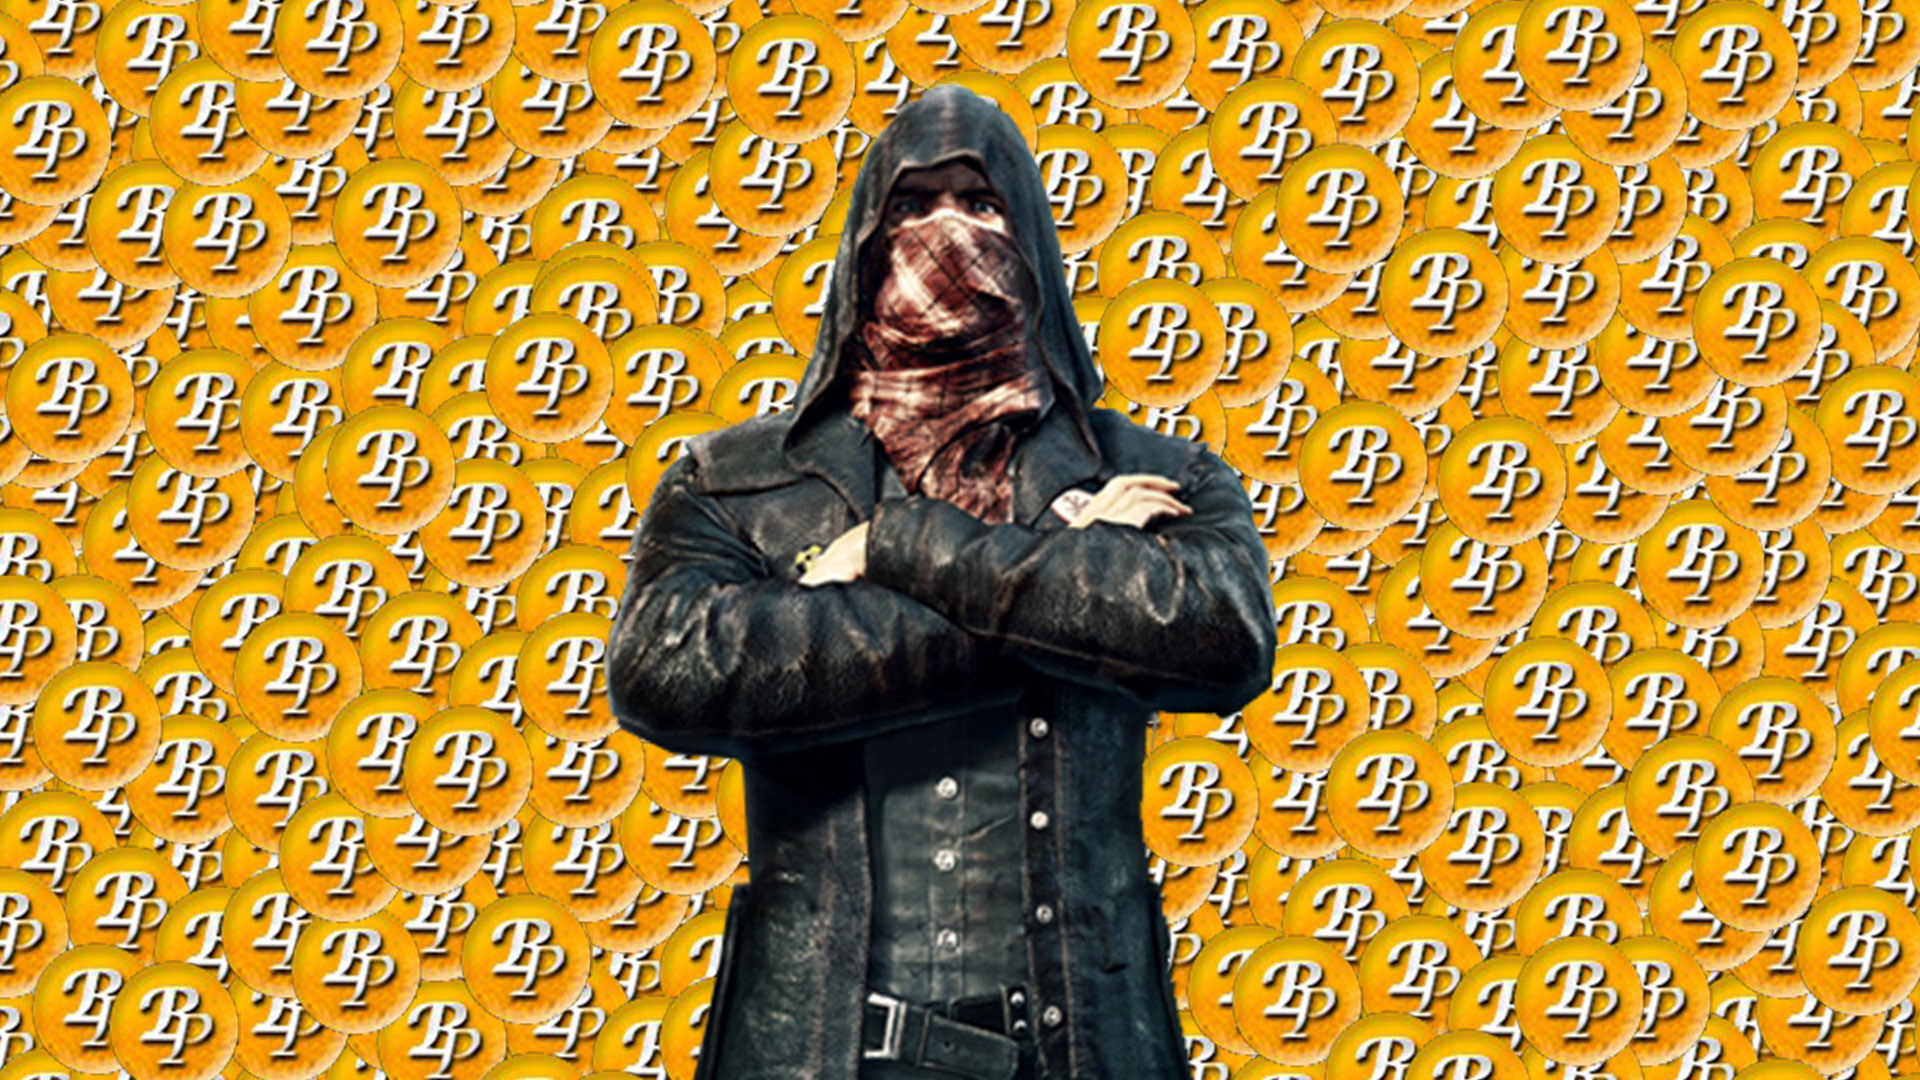 Pubg War Wallpaper: PUBG - How To Buy Battle Points